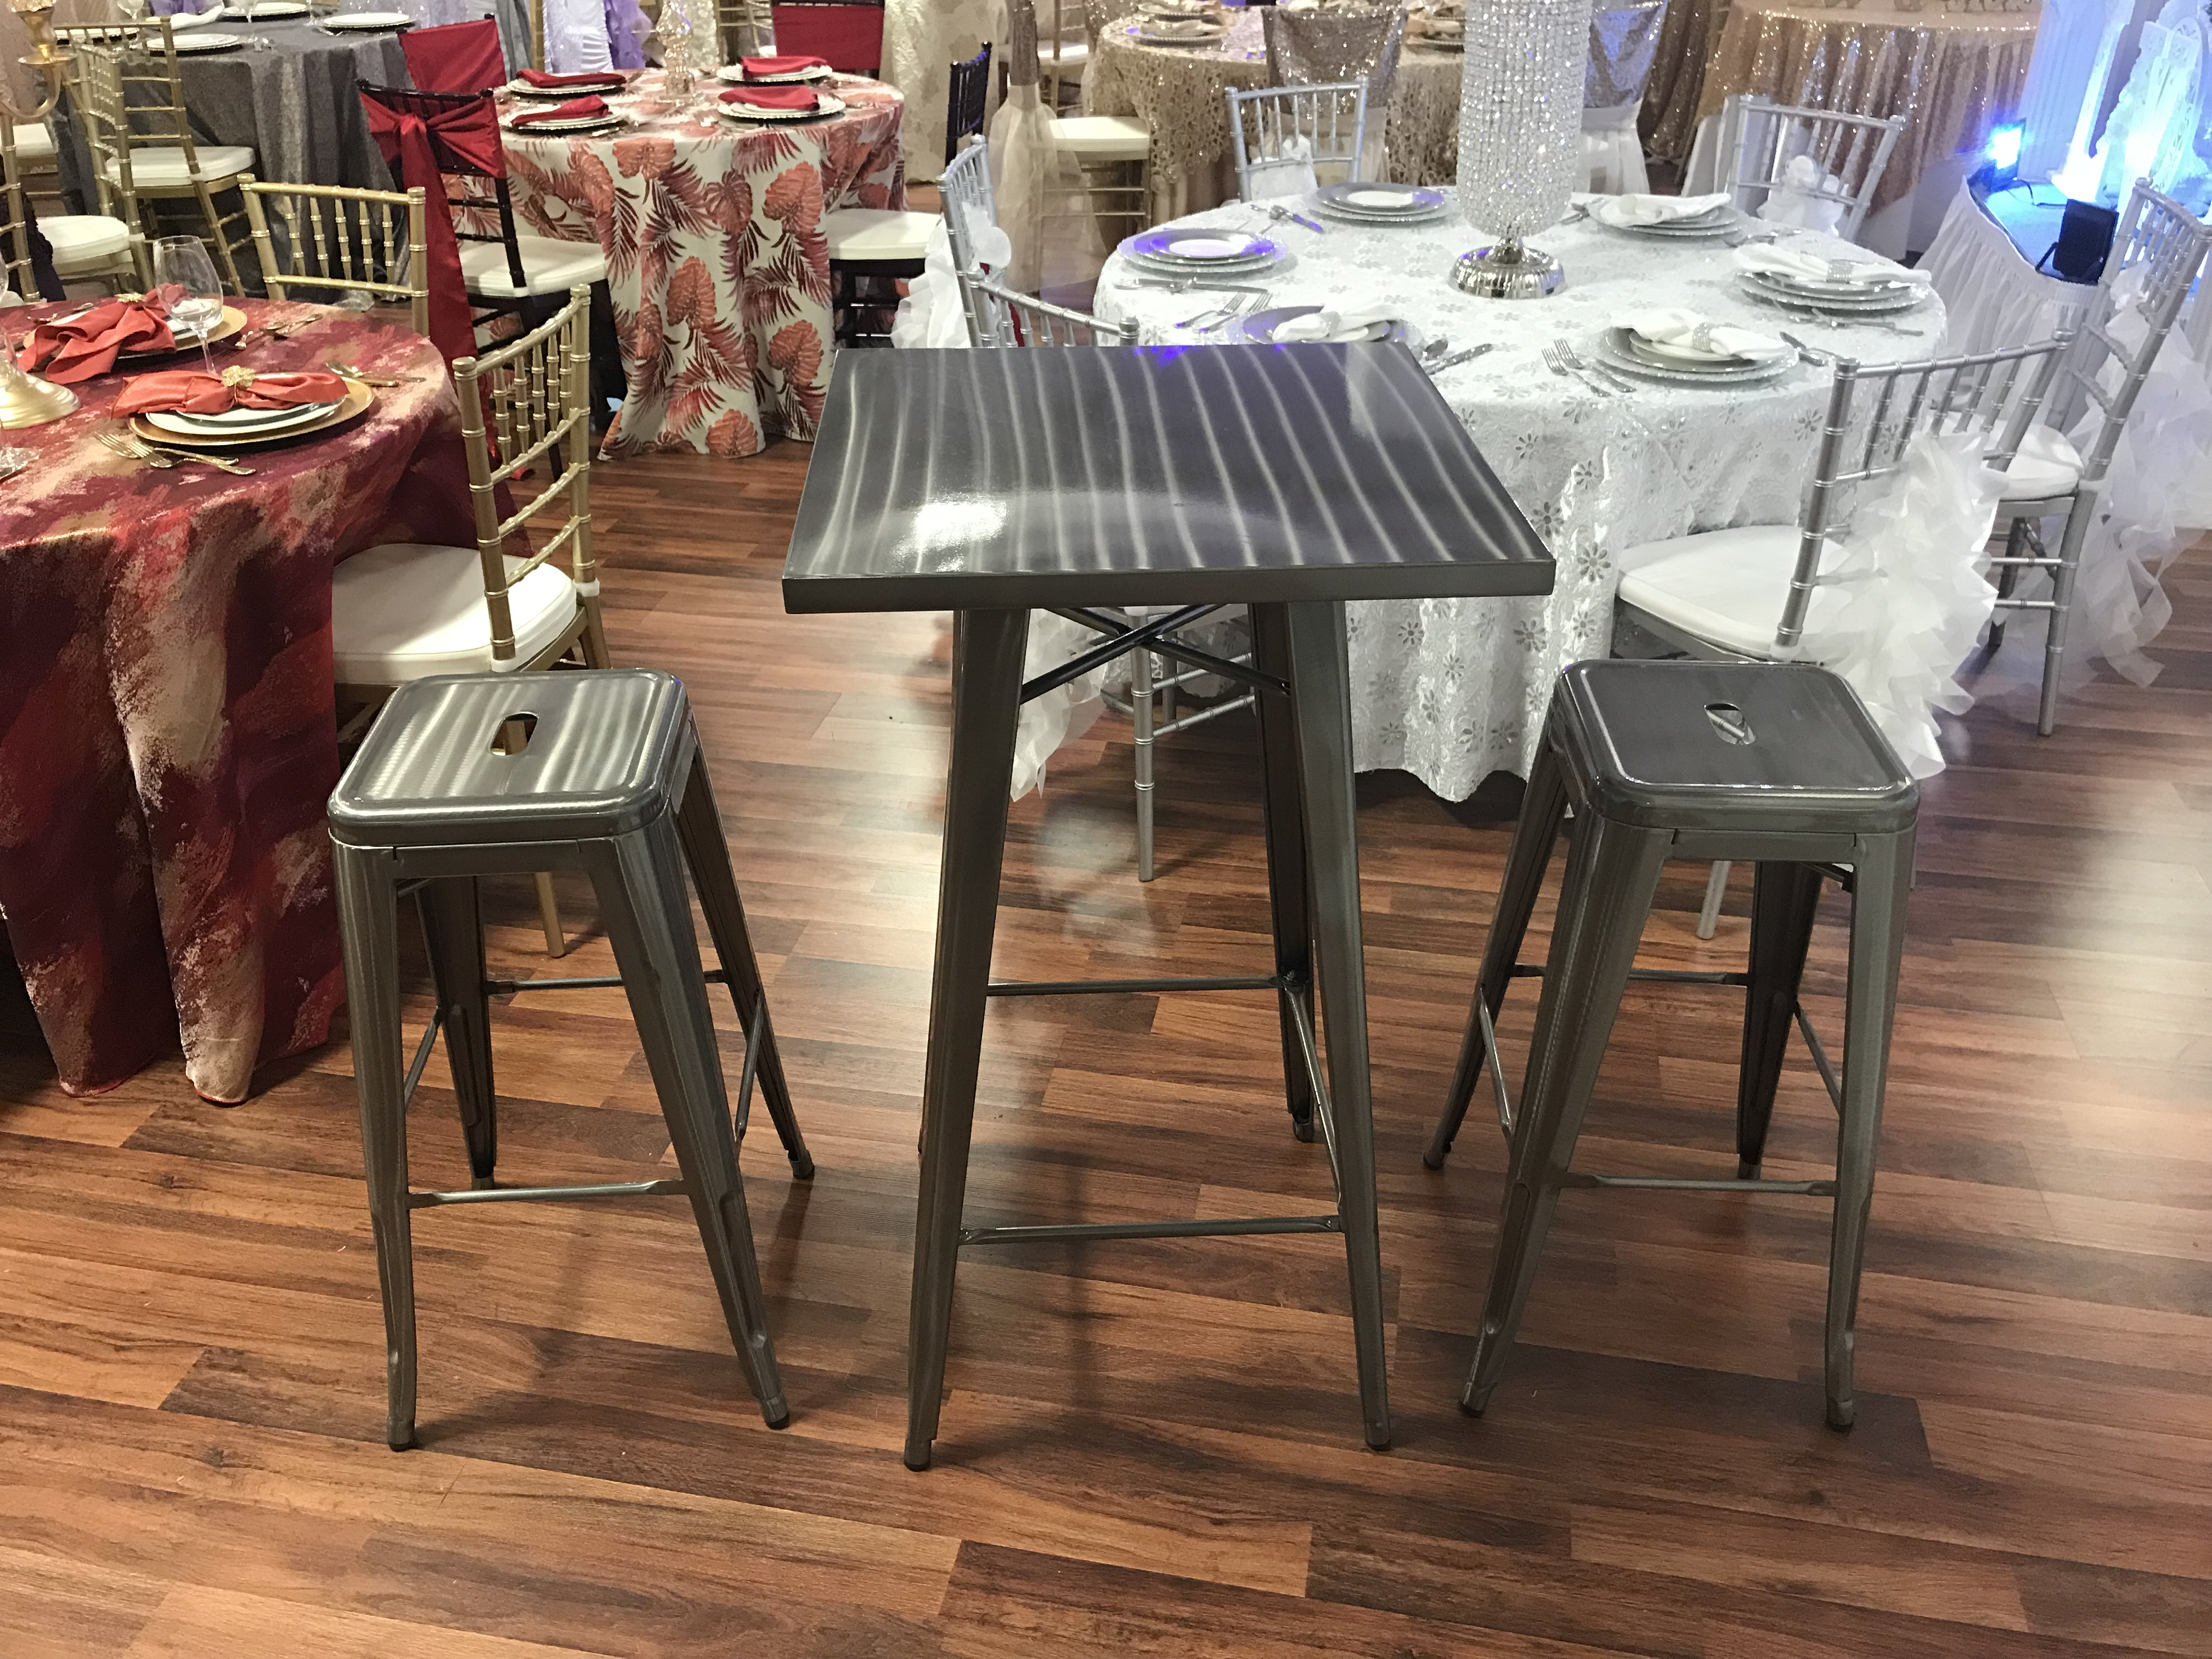 Silver Bistro Table With 2 Stools Party Rentals